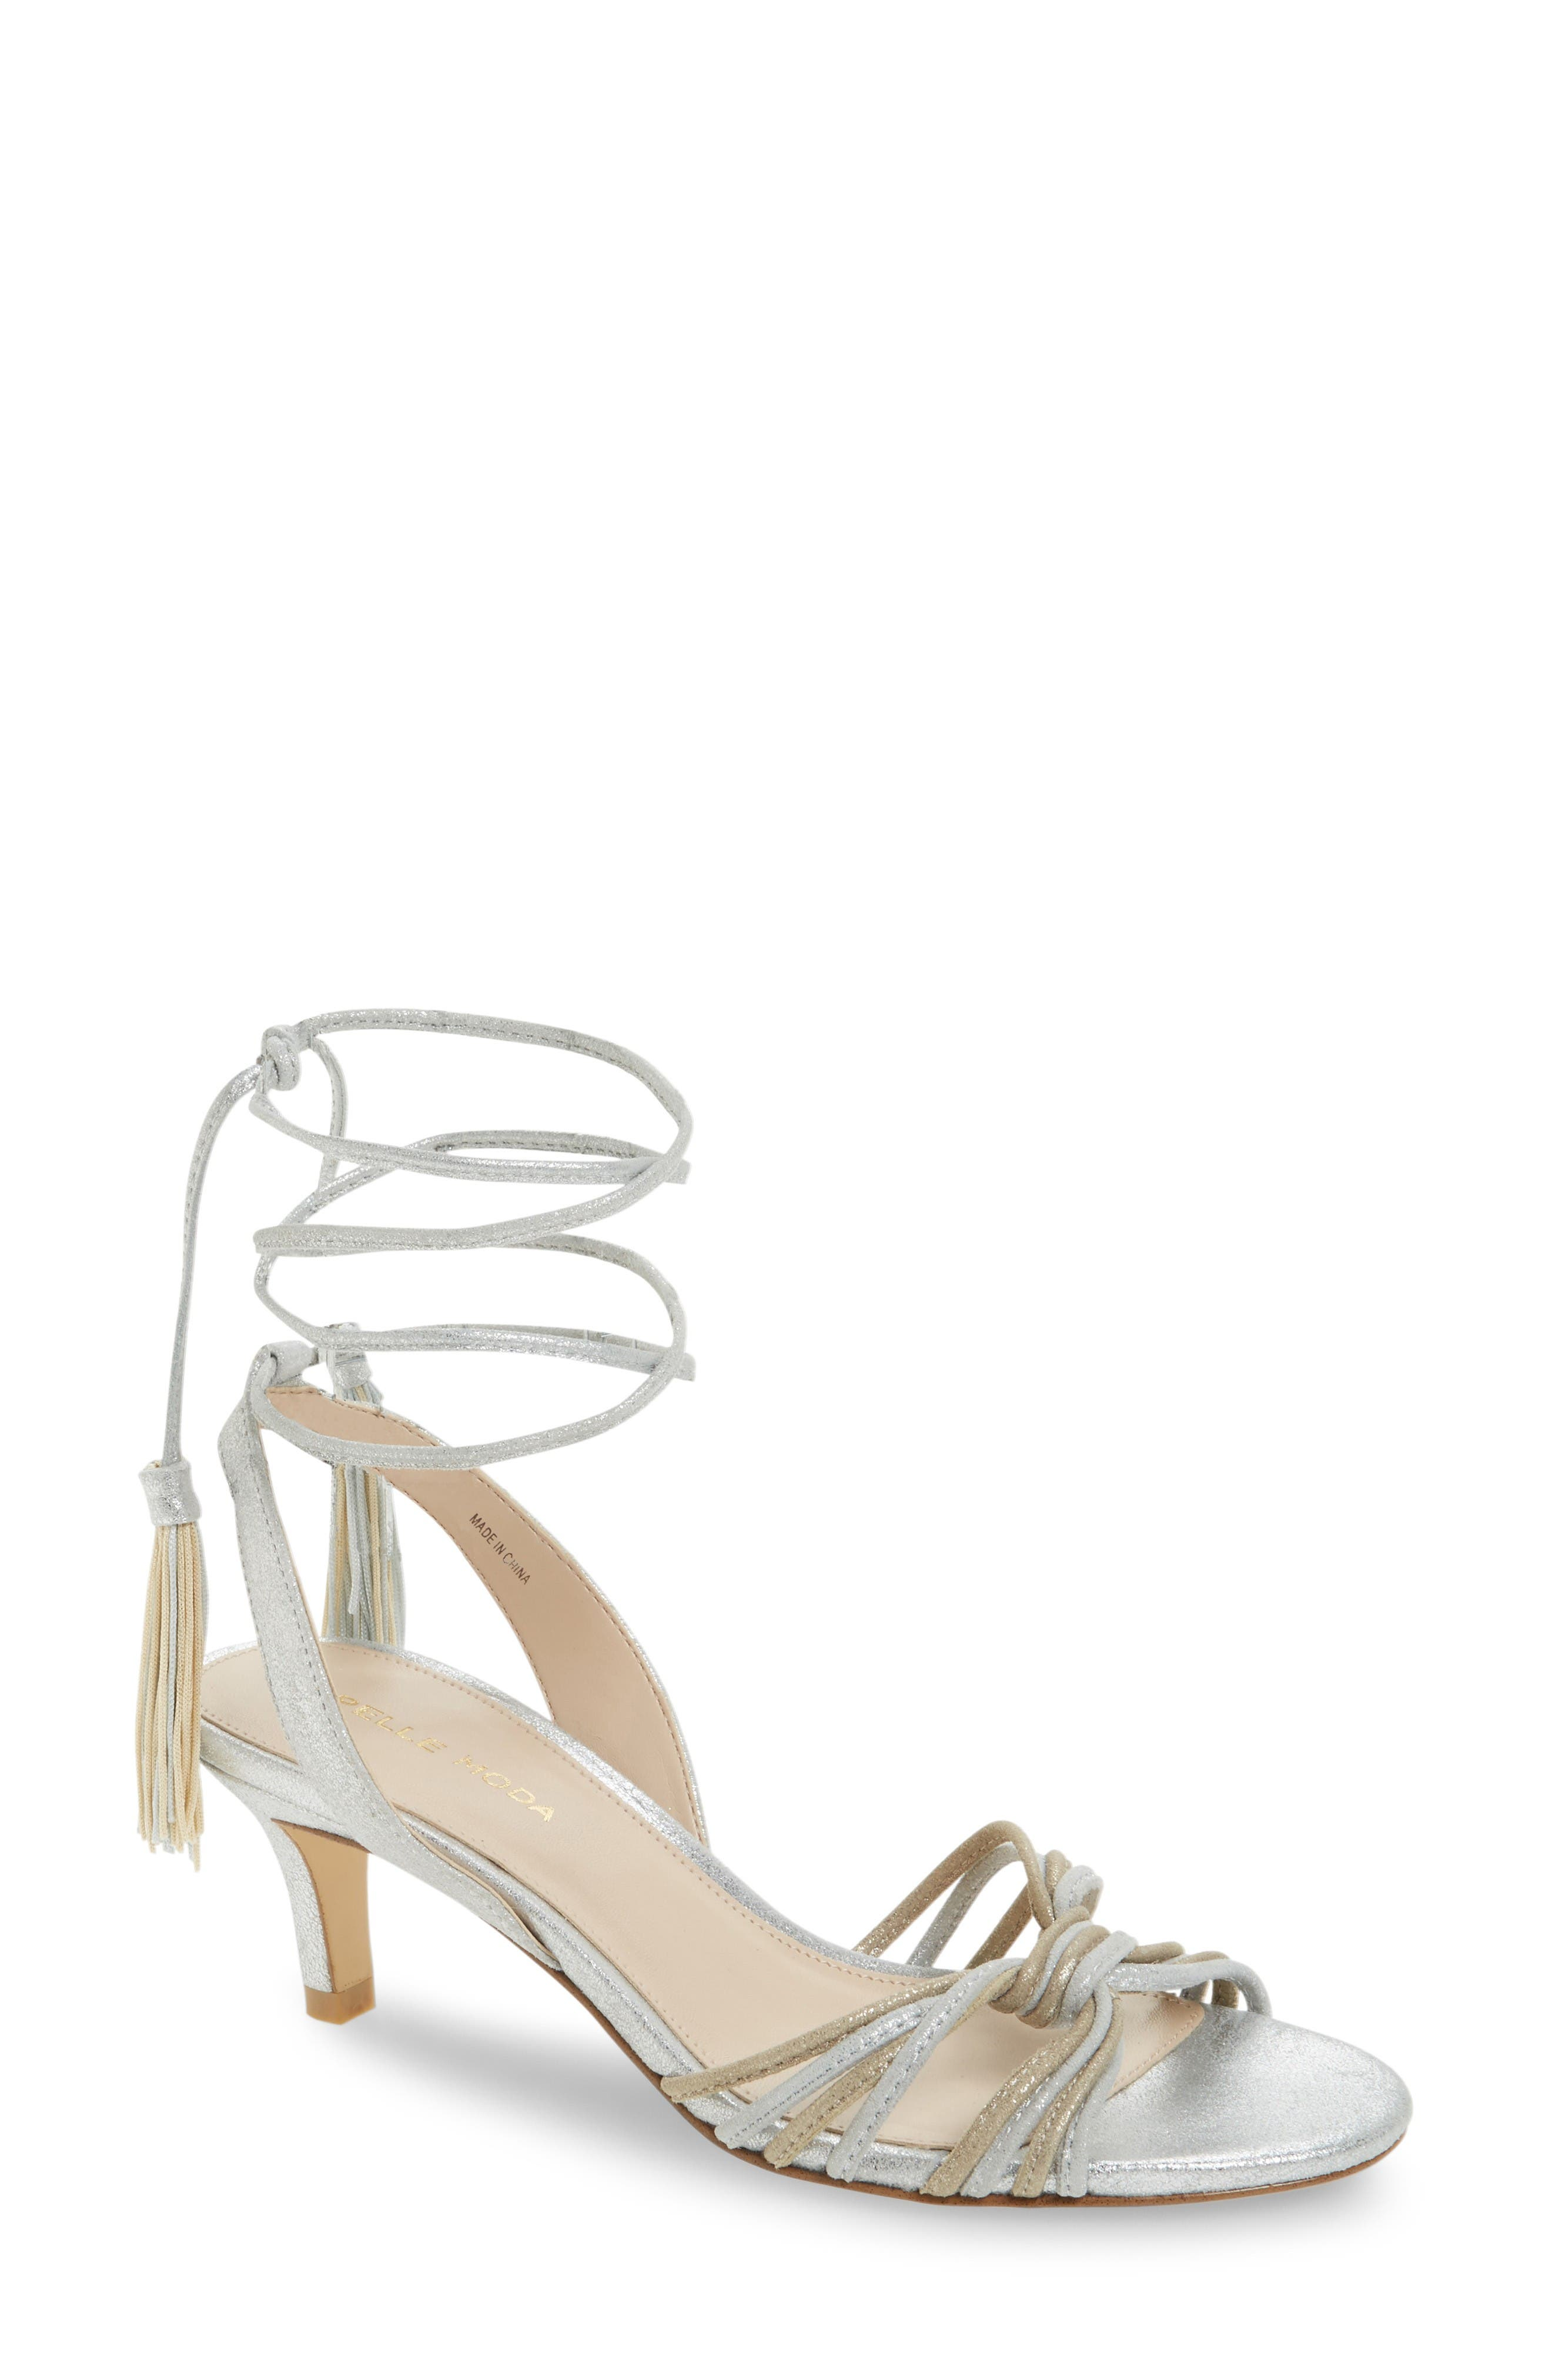 Alternate Image 1 Selected - Pelle Moda Benni Sandal (Women)